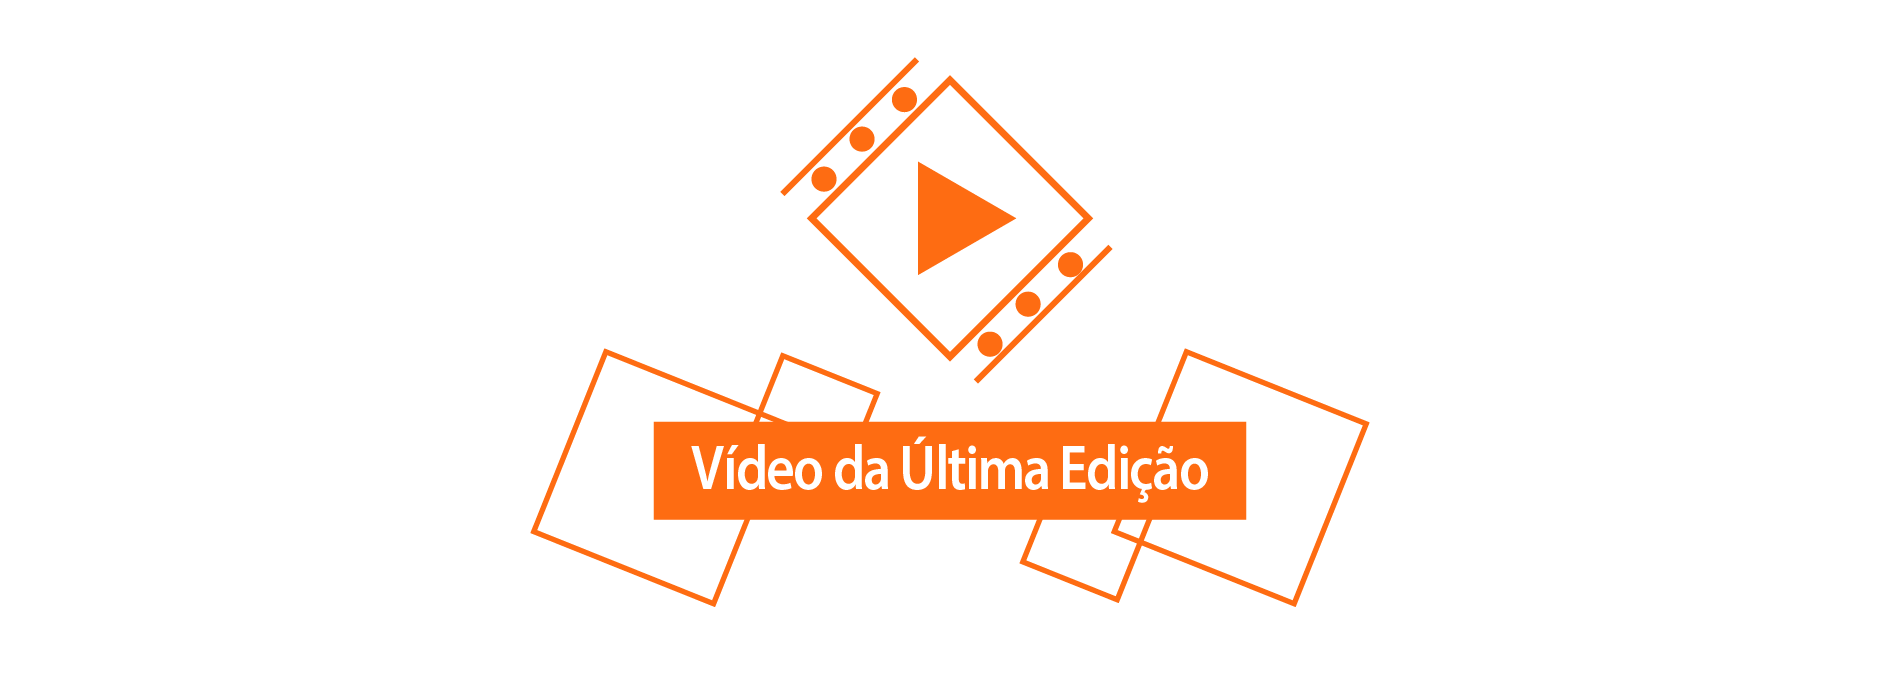 https://www.mestregp.com.br/wp-content/uploads/2018/01/Pagina-Speed-Project-1-Botãodevideo-1-1900x695.png